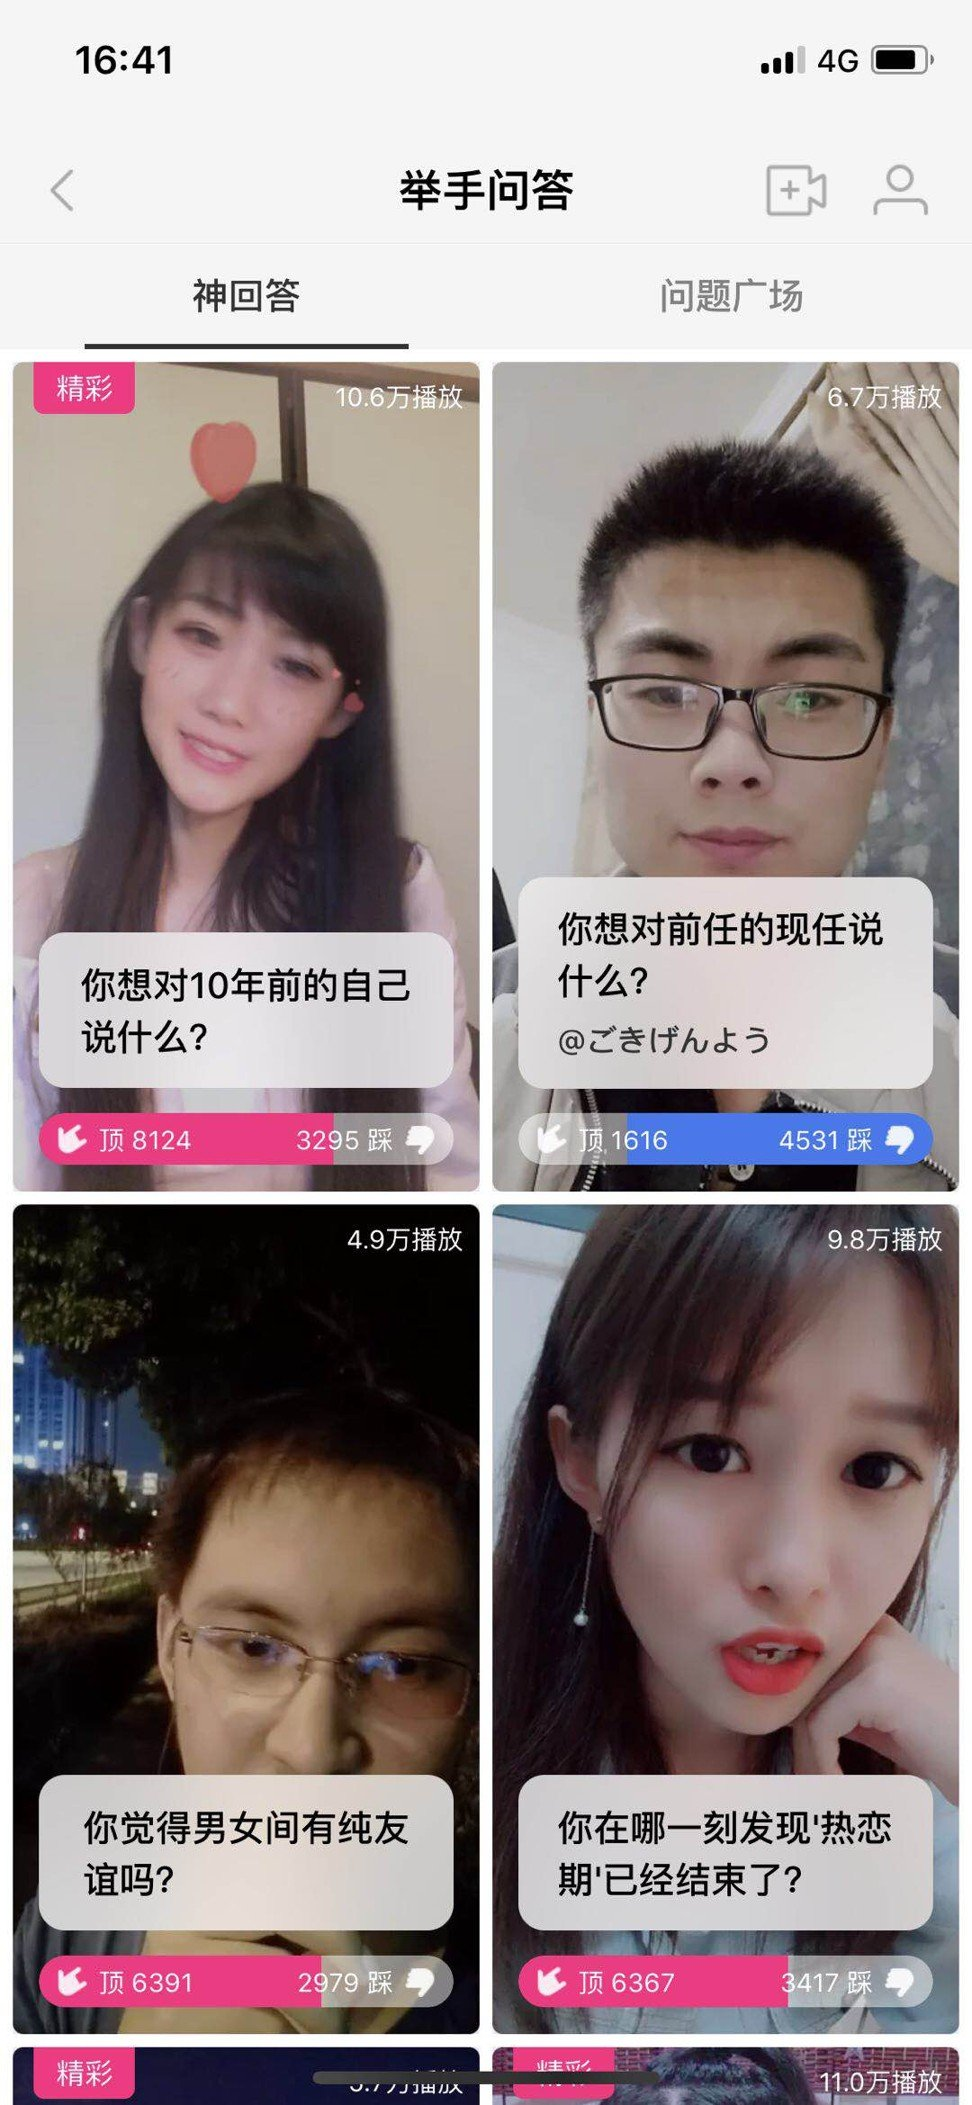 These Are Hookup Apps That People Actually Use In China